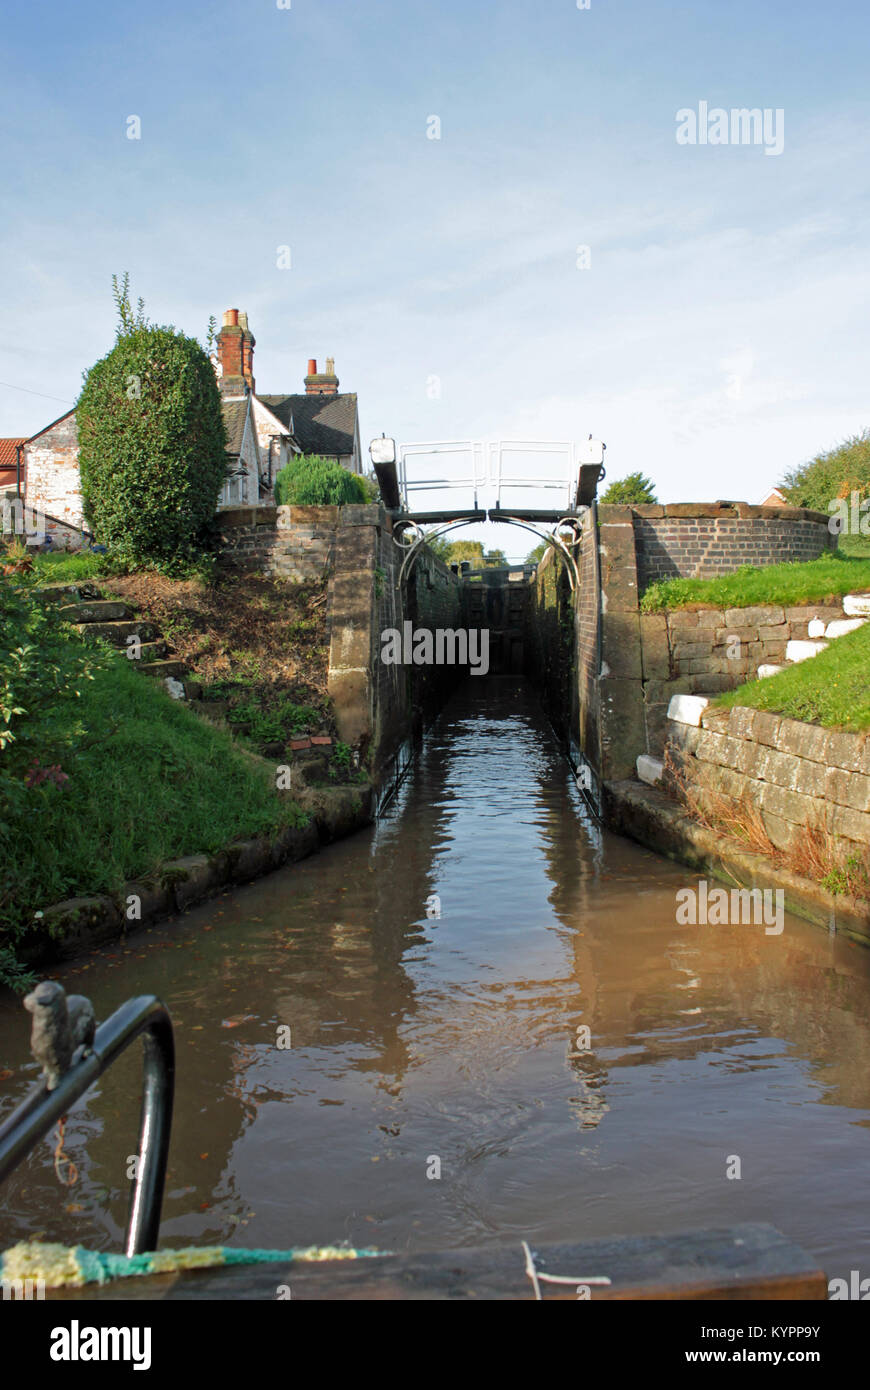 Leaving Wardle Lock 12.10.17.  The view from the back deck of narrow boat Emma Maye as the boat leaves Wardle Canal - Stock Image